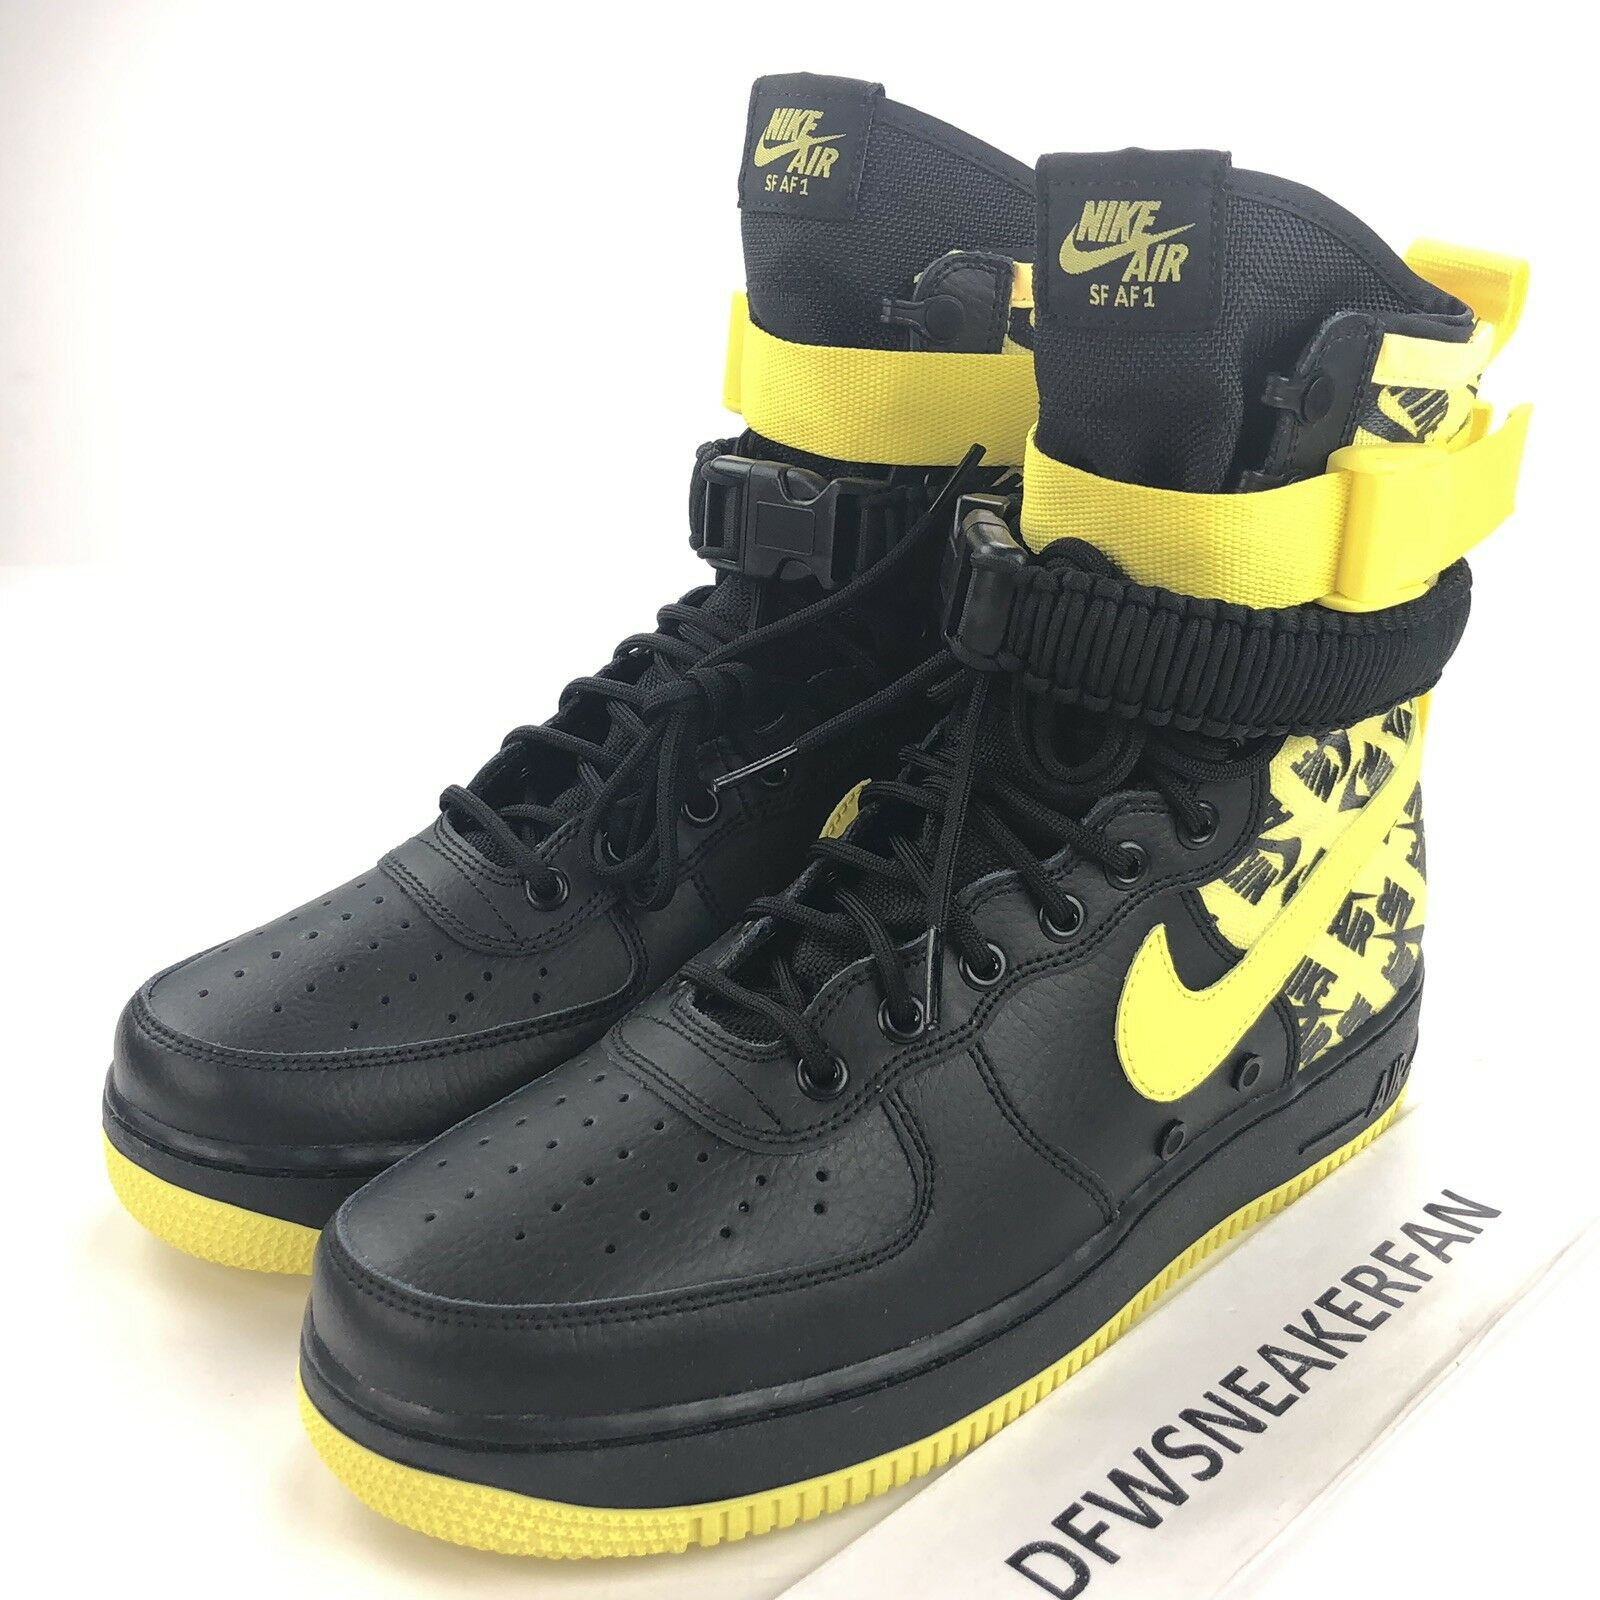 Nike SF Air Force 1 High Men's Size 10.5 Black Dynamic Yellow AR1955-001 shoes